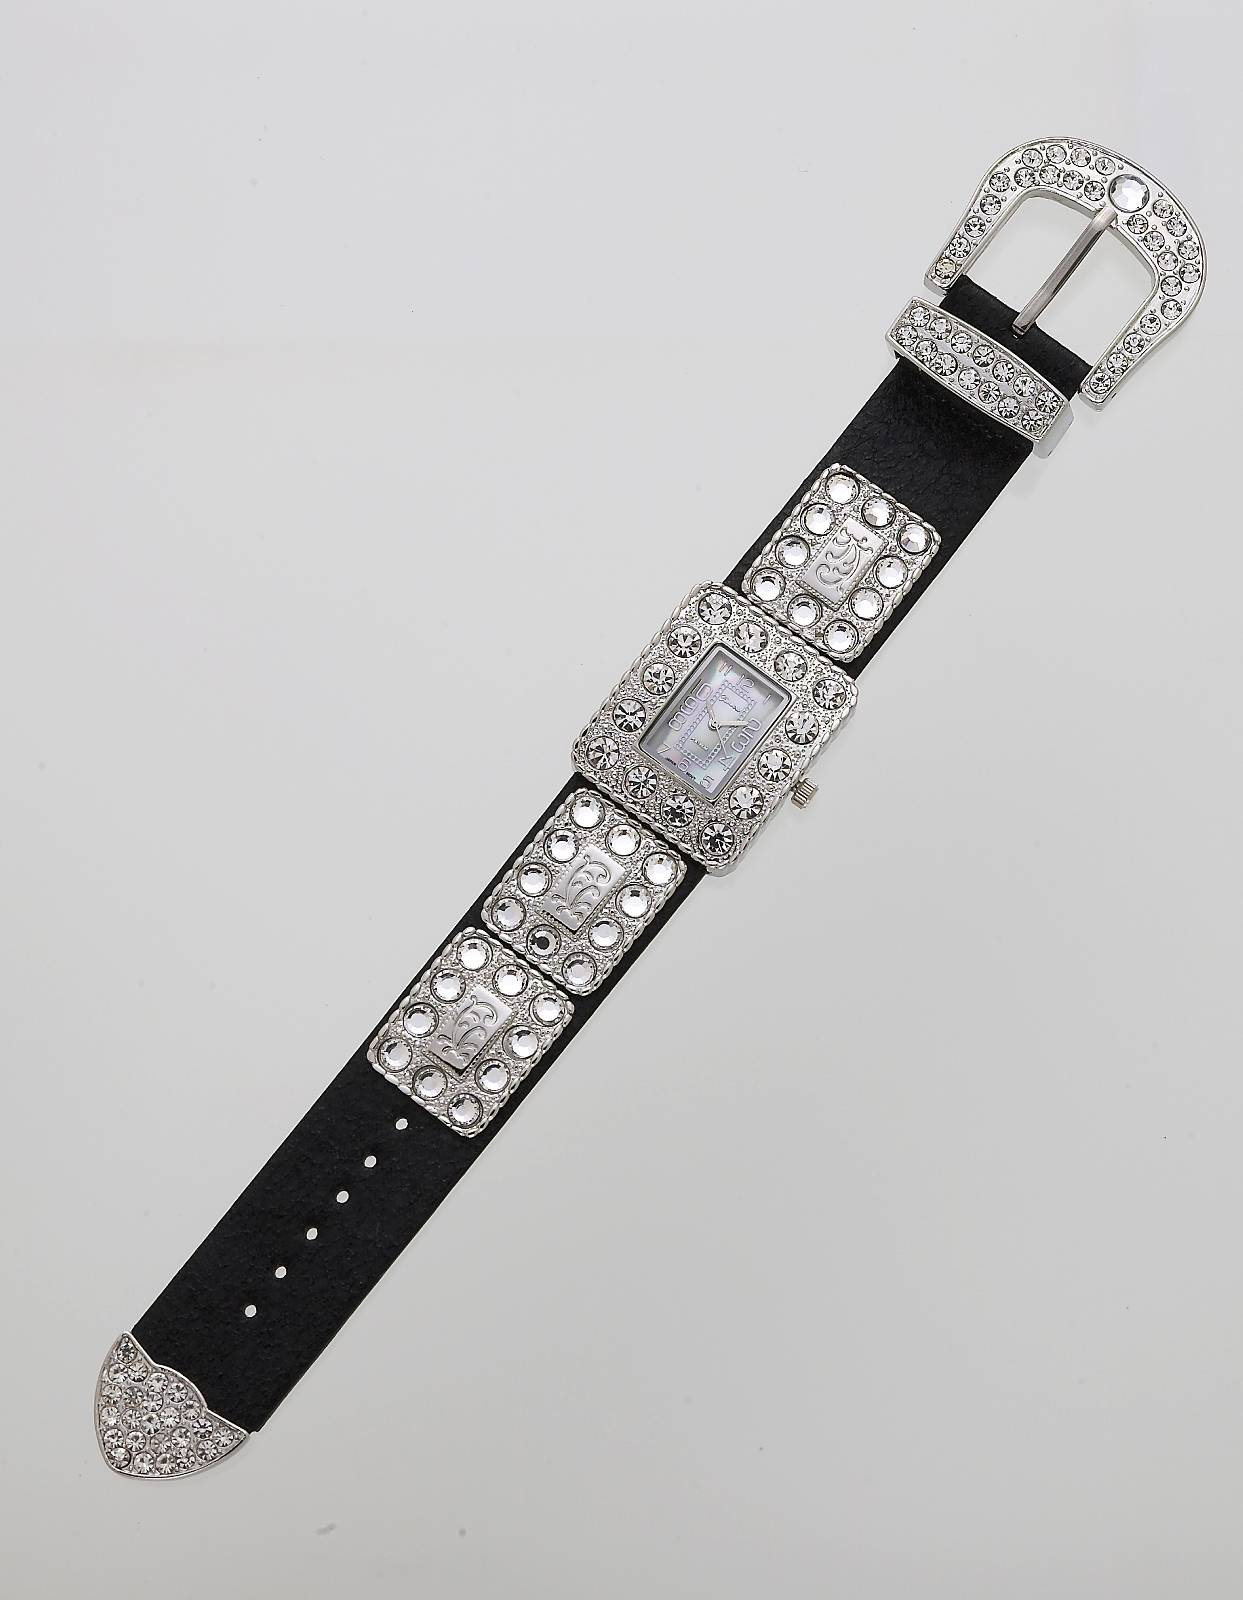 Crystal Bling Western Belt Buckle Watch